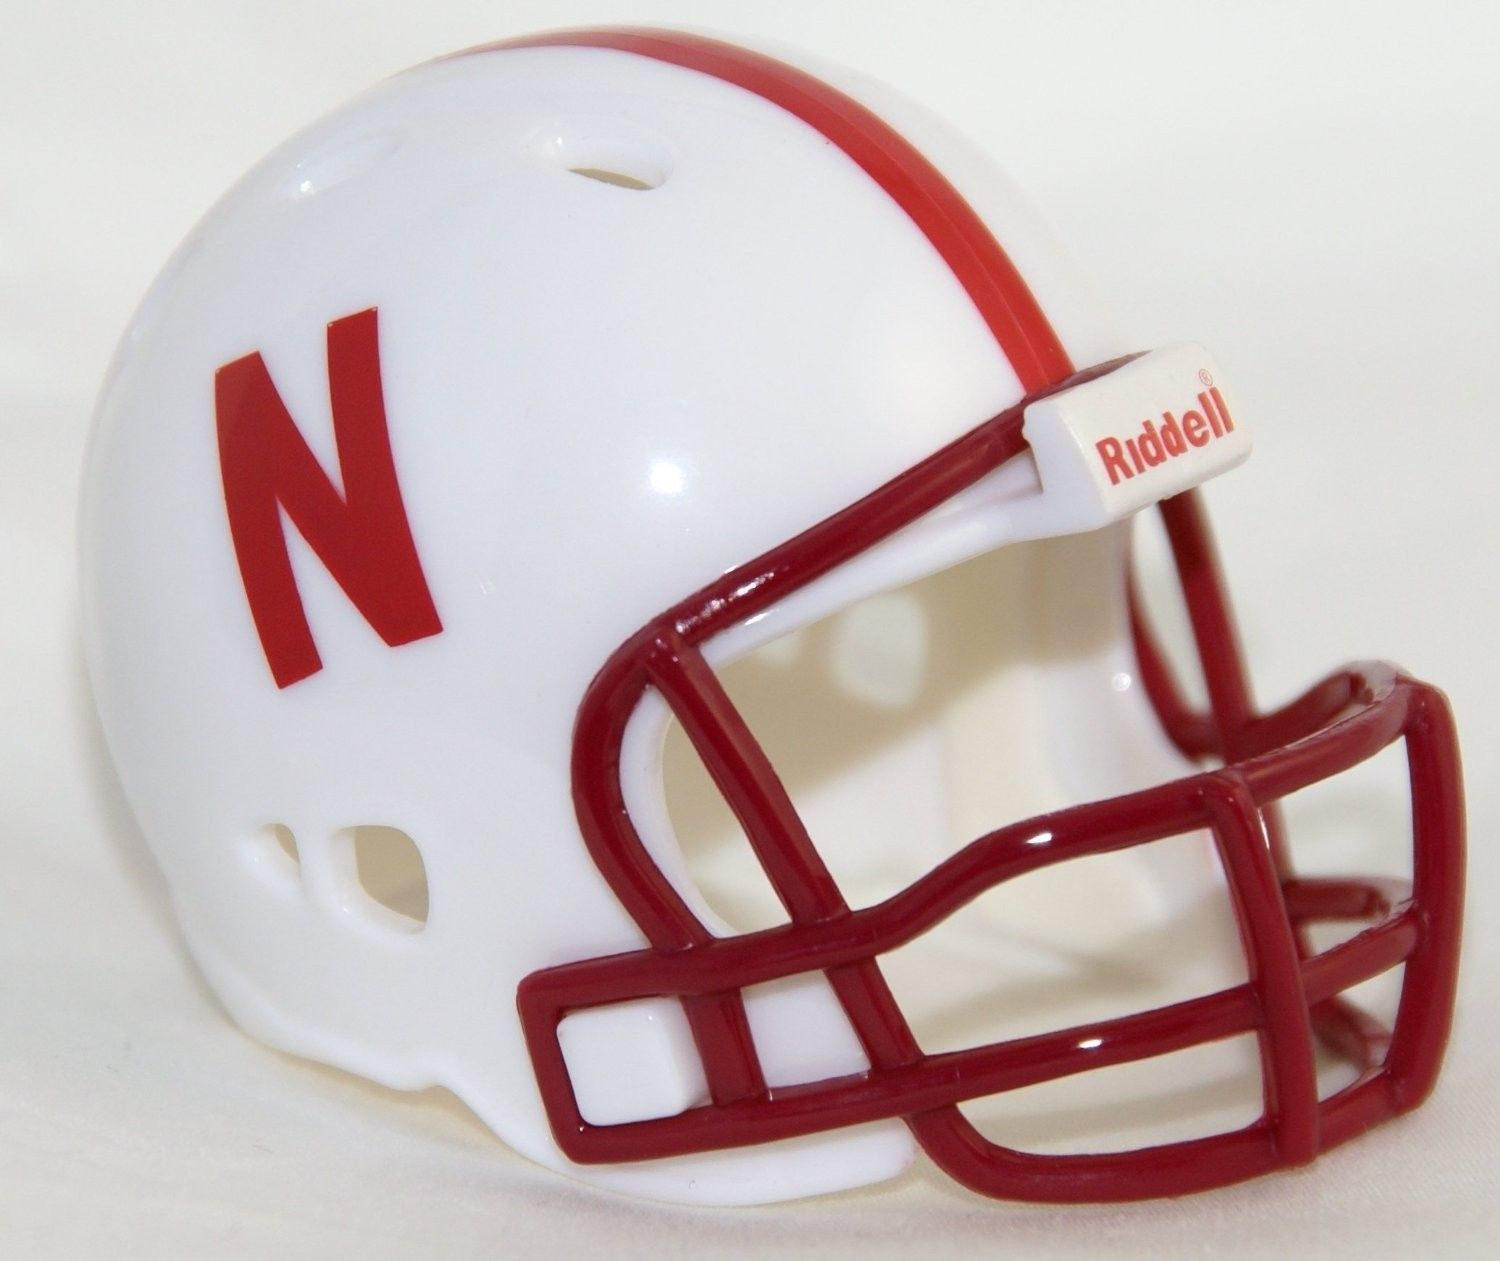 "NEBRASKA HUSKERS POCKET PRO FOOTBALL HELMET 2"" SIZE  Made By RIDDELL!"